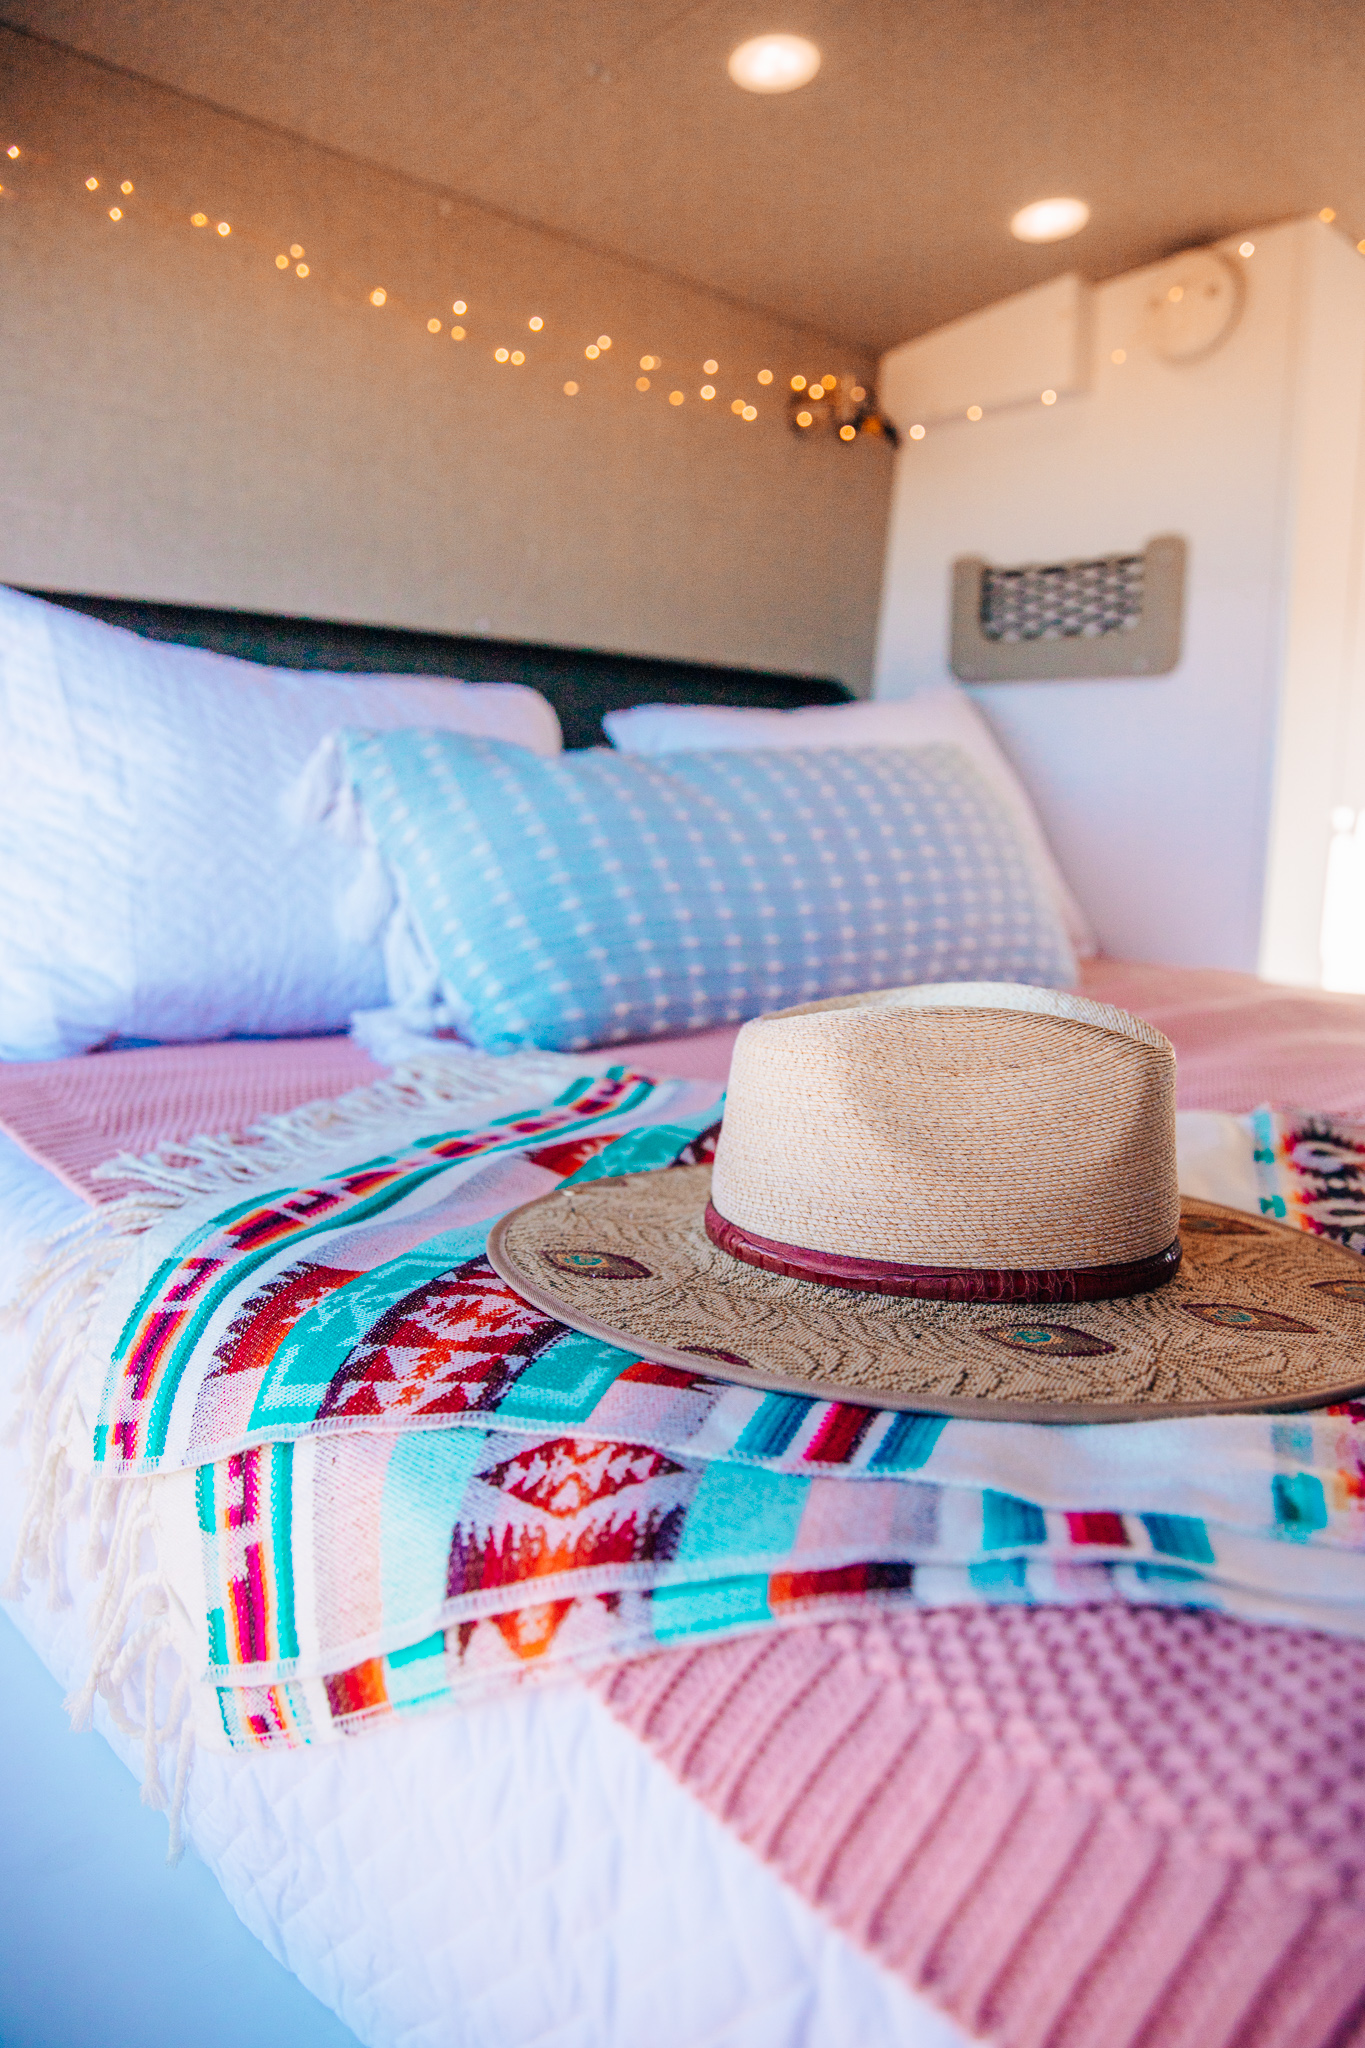 Cabana Van Queen size Bed with Revelgear String Lights and Blankets